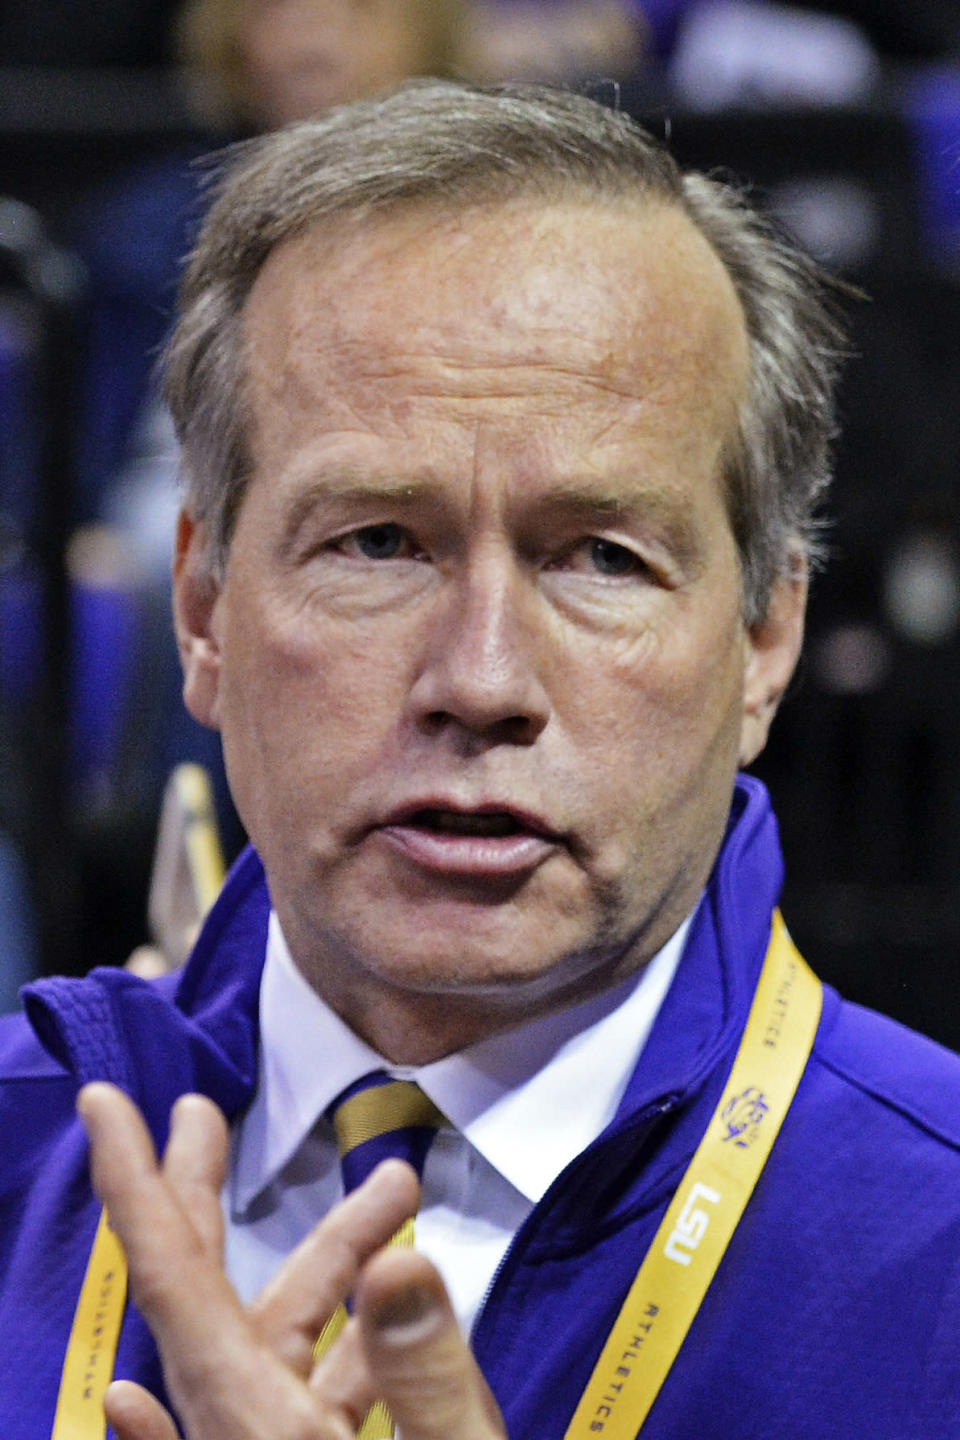 """FILE - In this Tuesday, Jan. 26, 2016, file photo, then-LSU President F. King Alexander is shown before an NCAA college basketball game against Georgia in Baton Rouge, La. Parents of former Oregon State volleyball players urged the school's trustees to consider president F. King Alexander's handling of abuse allegations in that program while they're discussing his future because of unrelated cases while he was at LSU. An independent investigation at that school found a """"serious institutional failure"""" in LSU's handling of Title IX cases during Alexander's tenure there, which ended in 2019. (Hilary Scheinuk/The Advocate via AP, File)"""